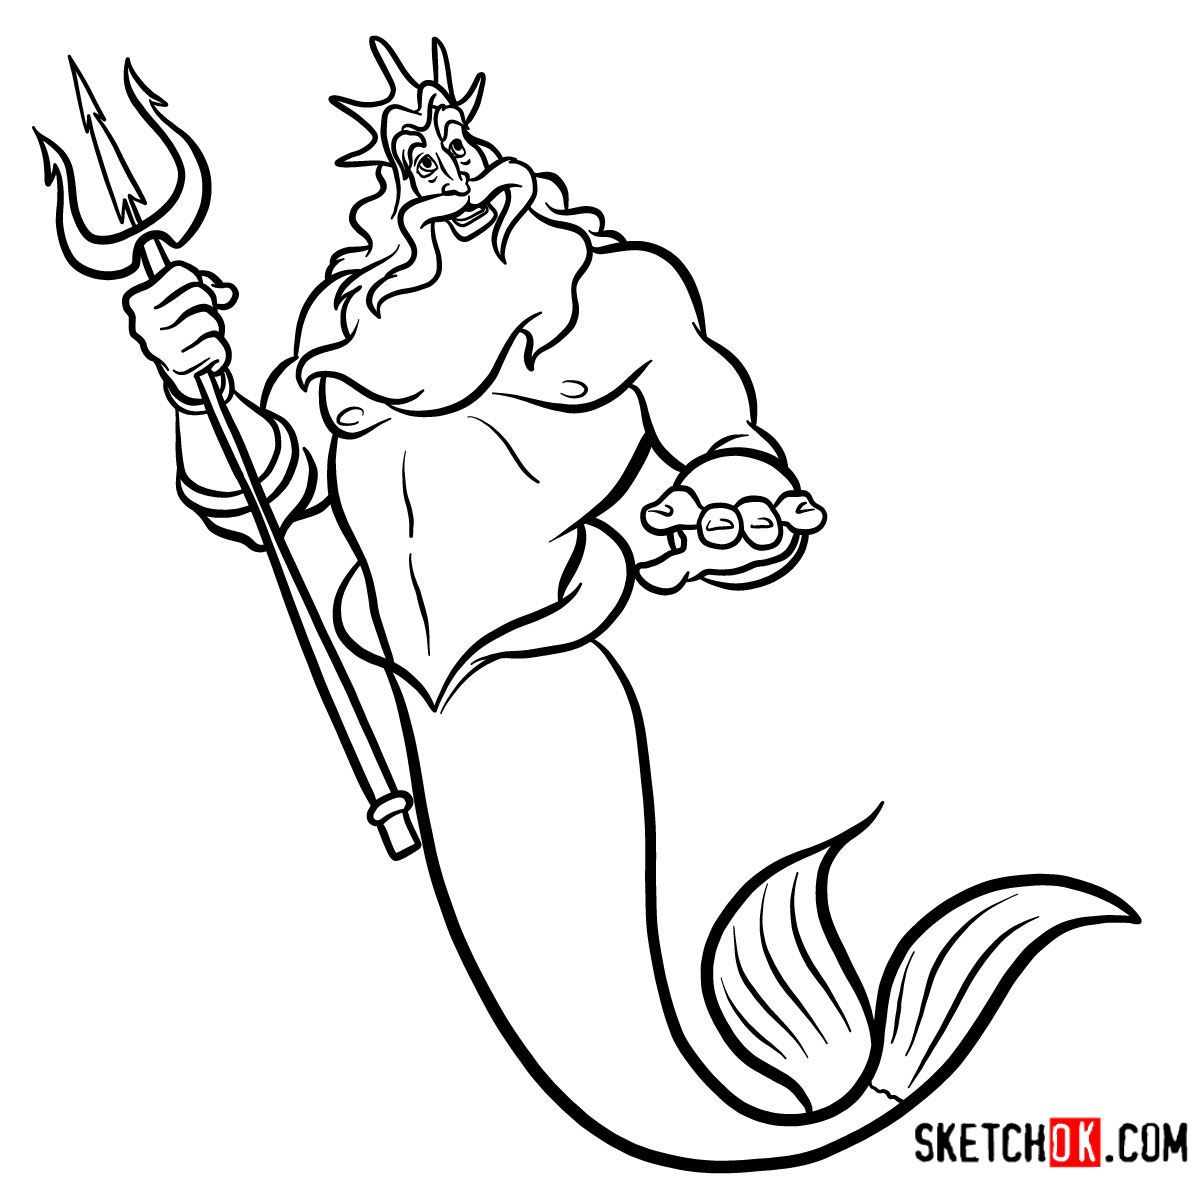 How To Draw King Triton The Little Mermaid Step By Step Drawing Tutorials Little Mermaid Drawings Mermaid Drawings Little Mermaid Characters [ 1200 x 1200 Pixel ]